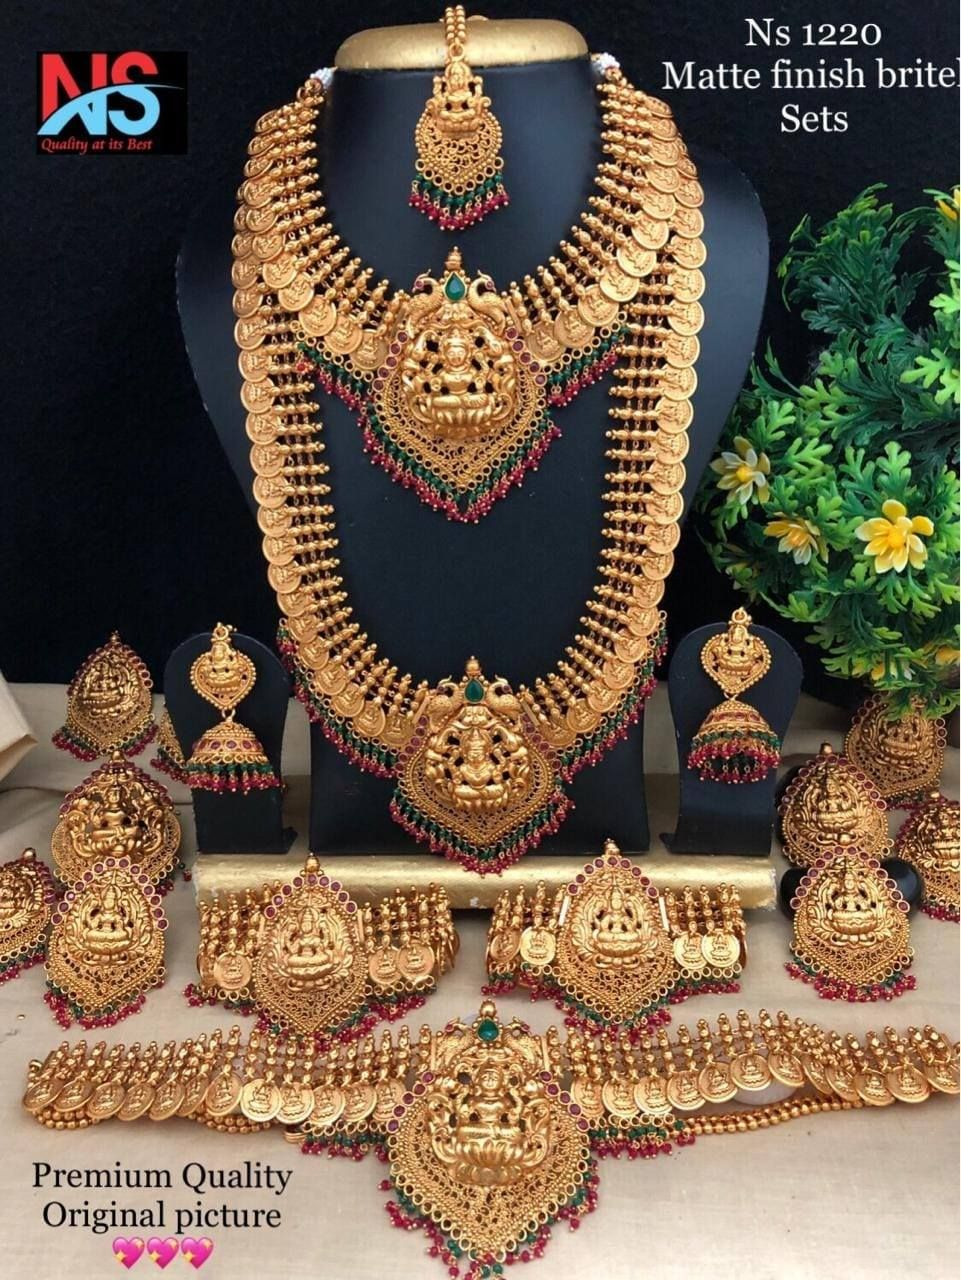 Bridal Jewellery For Rent : bridal, jewellery, Jewelleries, Indian, Bridal, Jewelry, Sets,, Brides